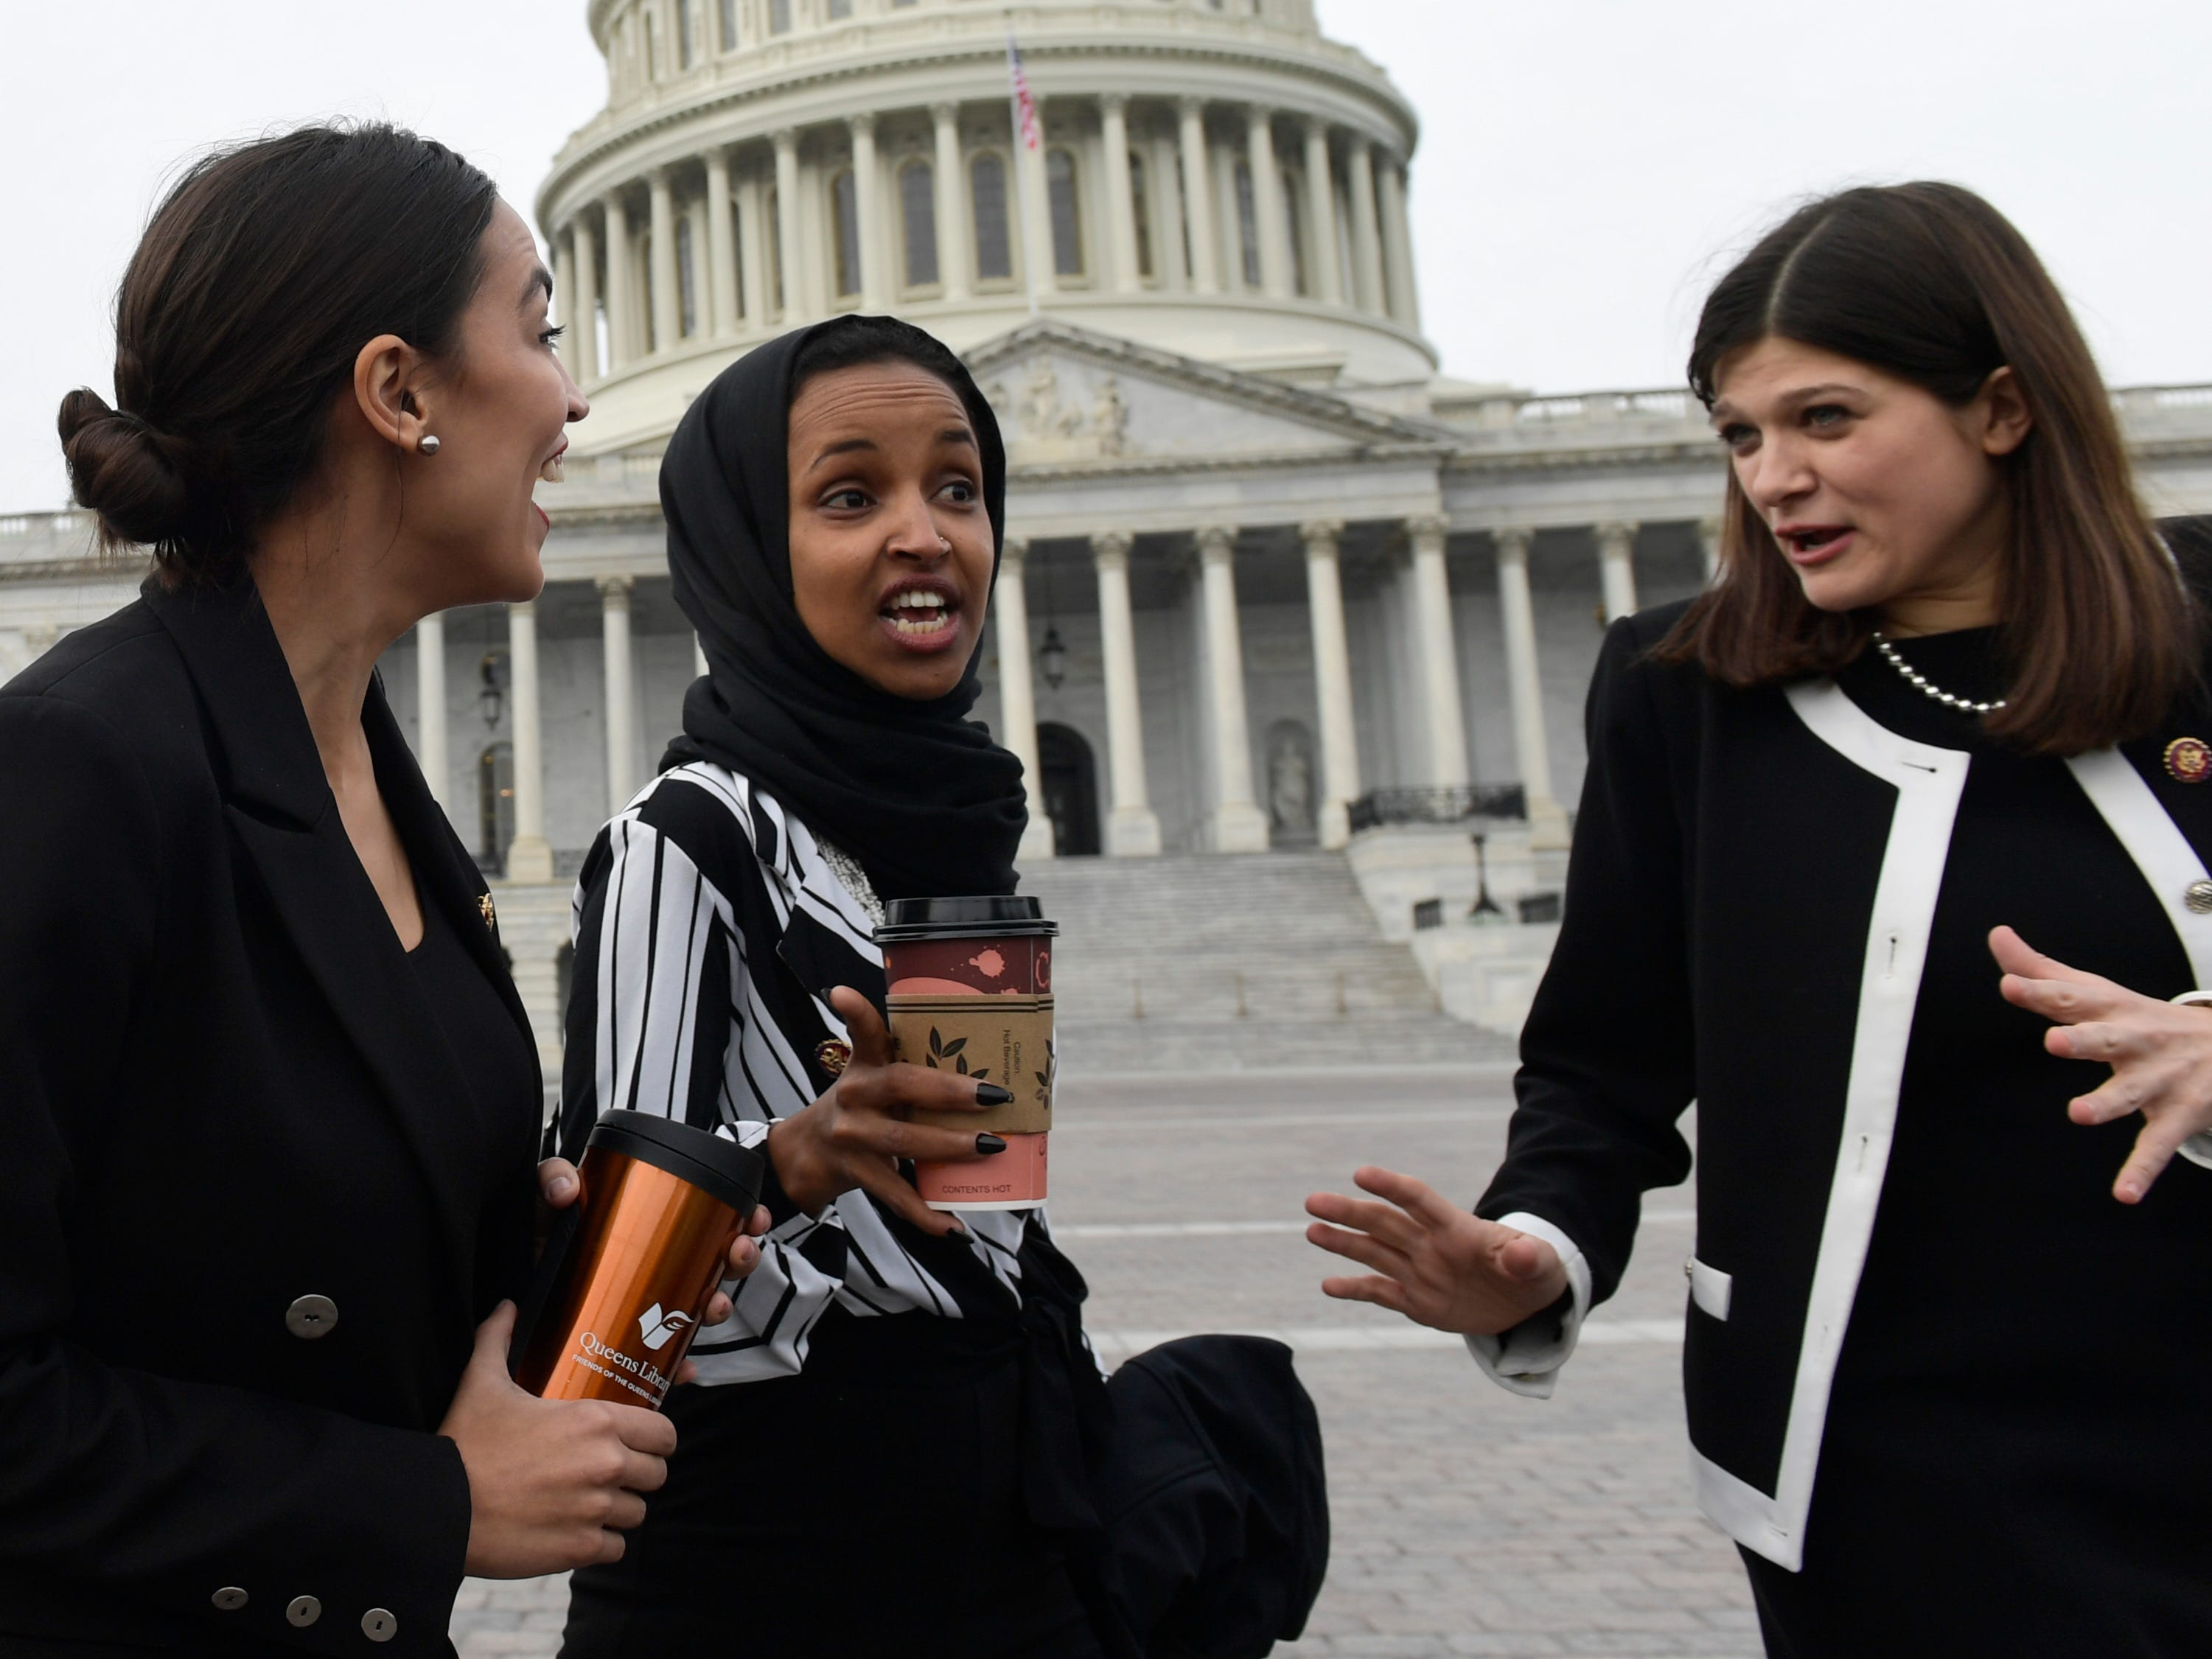 Rep. Alexandria Ocasio-Cortez, D-N.Y., left, talks with Rep. Ilhan Omar, D-Minn., center, and Rep. Haley Stevens, D-Mich., right, as they head to a group photo with the women of the 116th Congress on Capitol Hill in Washington, Friday, Jan. 4, 2019.